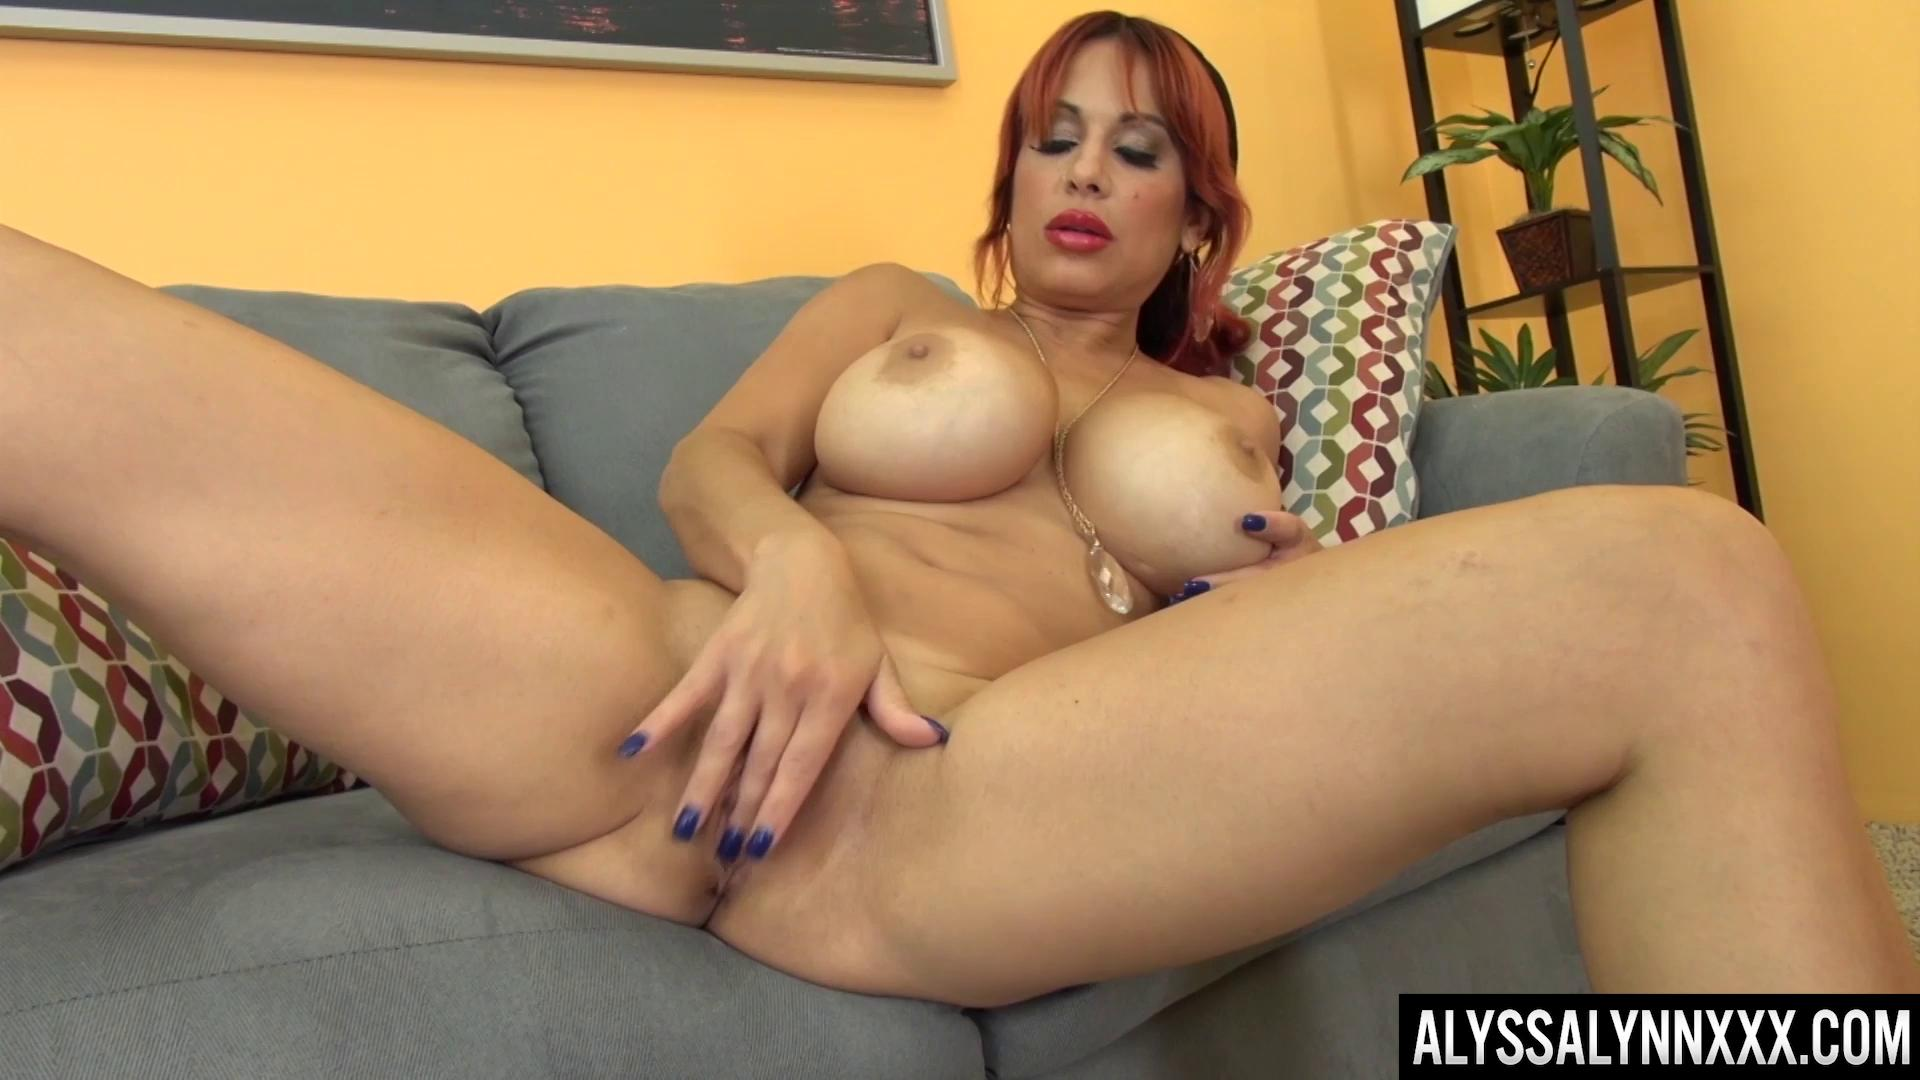 [PornstarPlatinum] Alyssa Lynn (Self Loving Show / 06.20.2020)